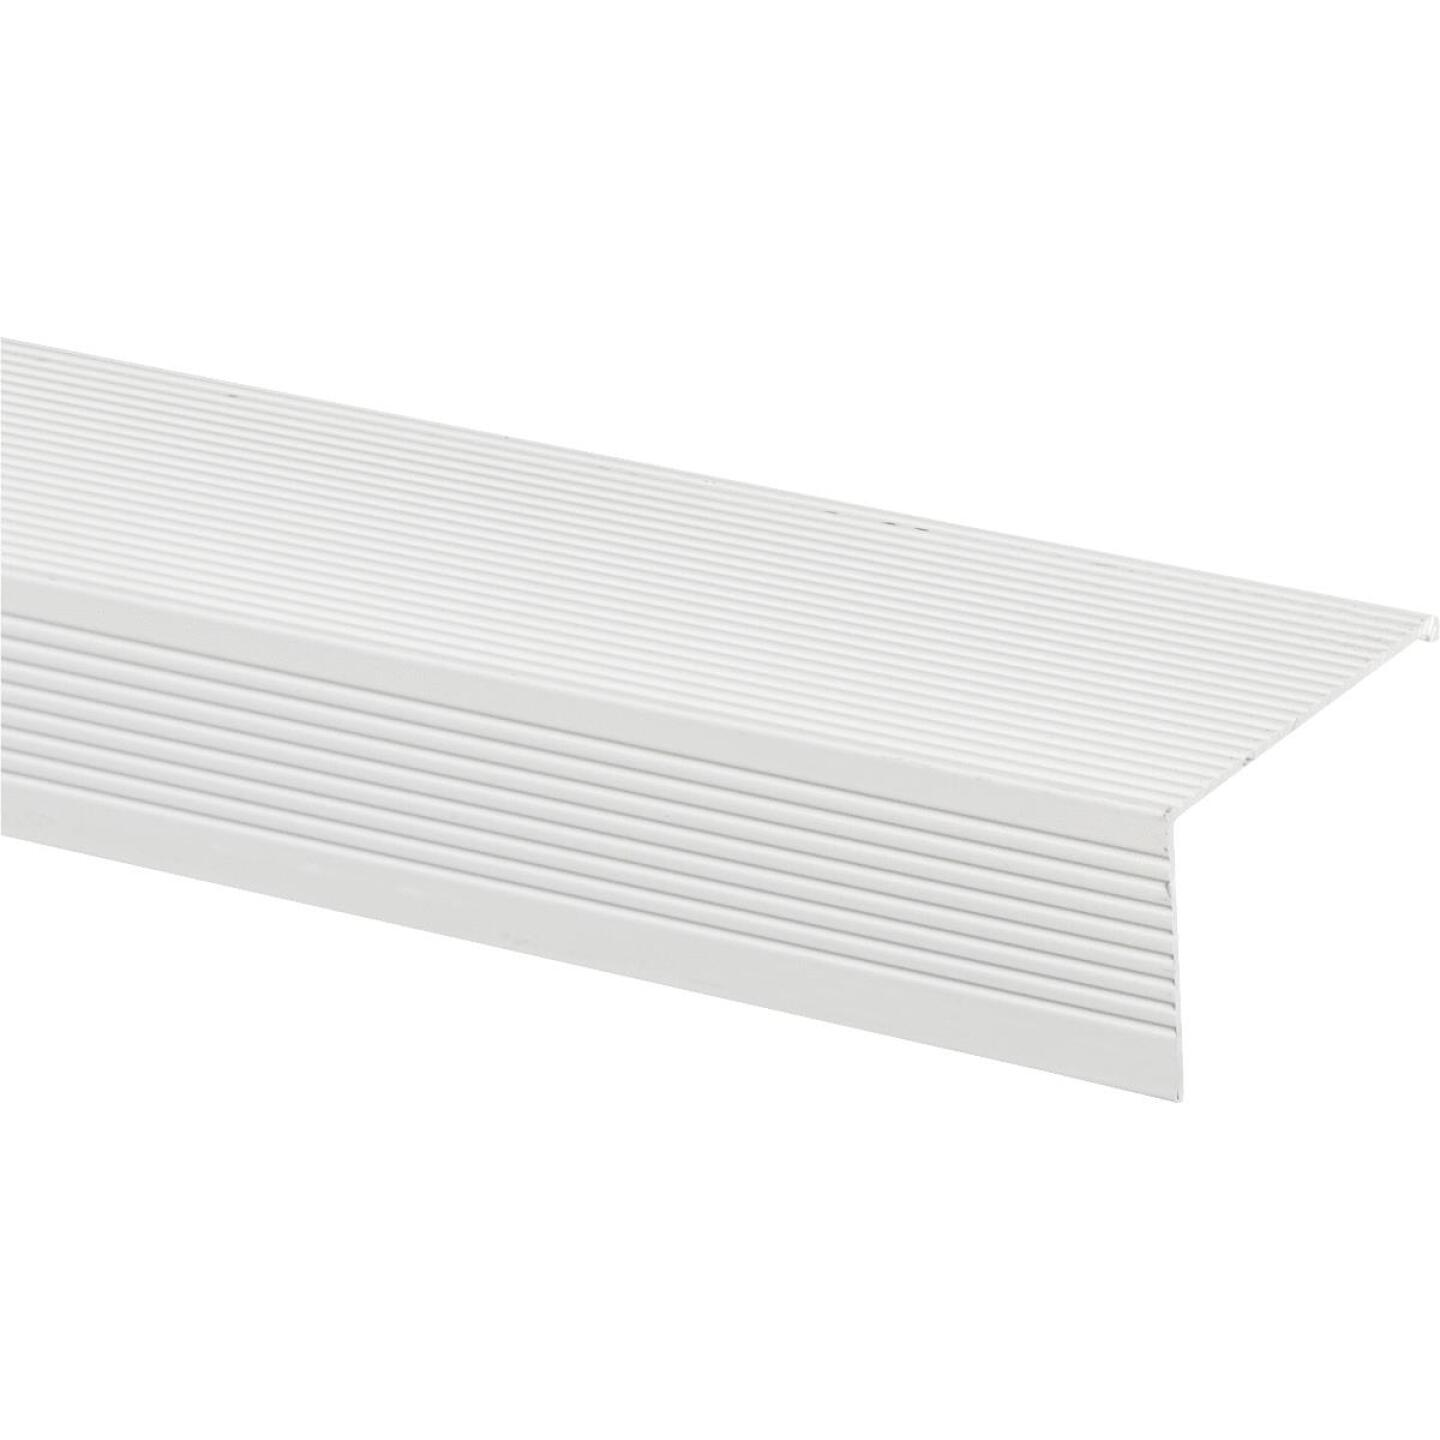 """M-D Ultra White 36"""" x  2-3/4"""" Sill Nosing Image 1"""